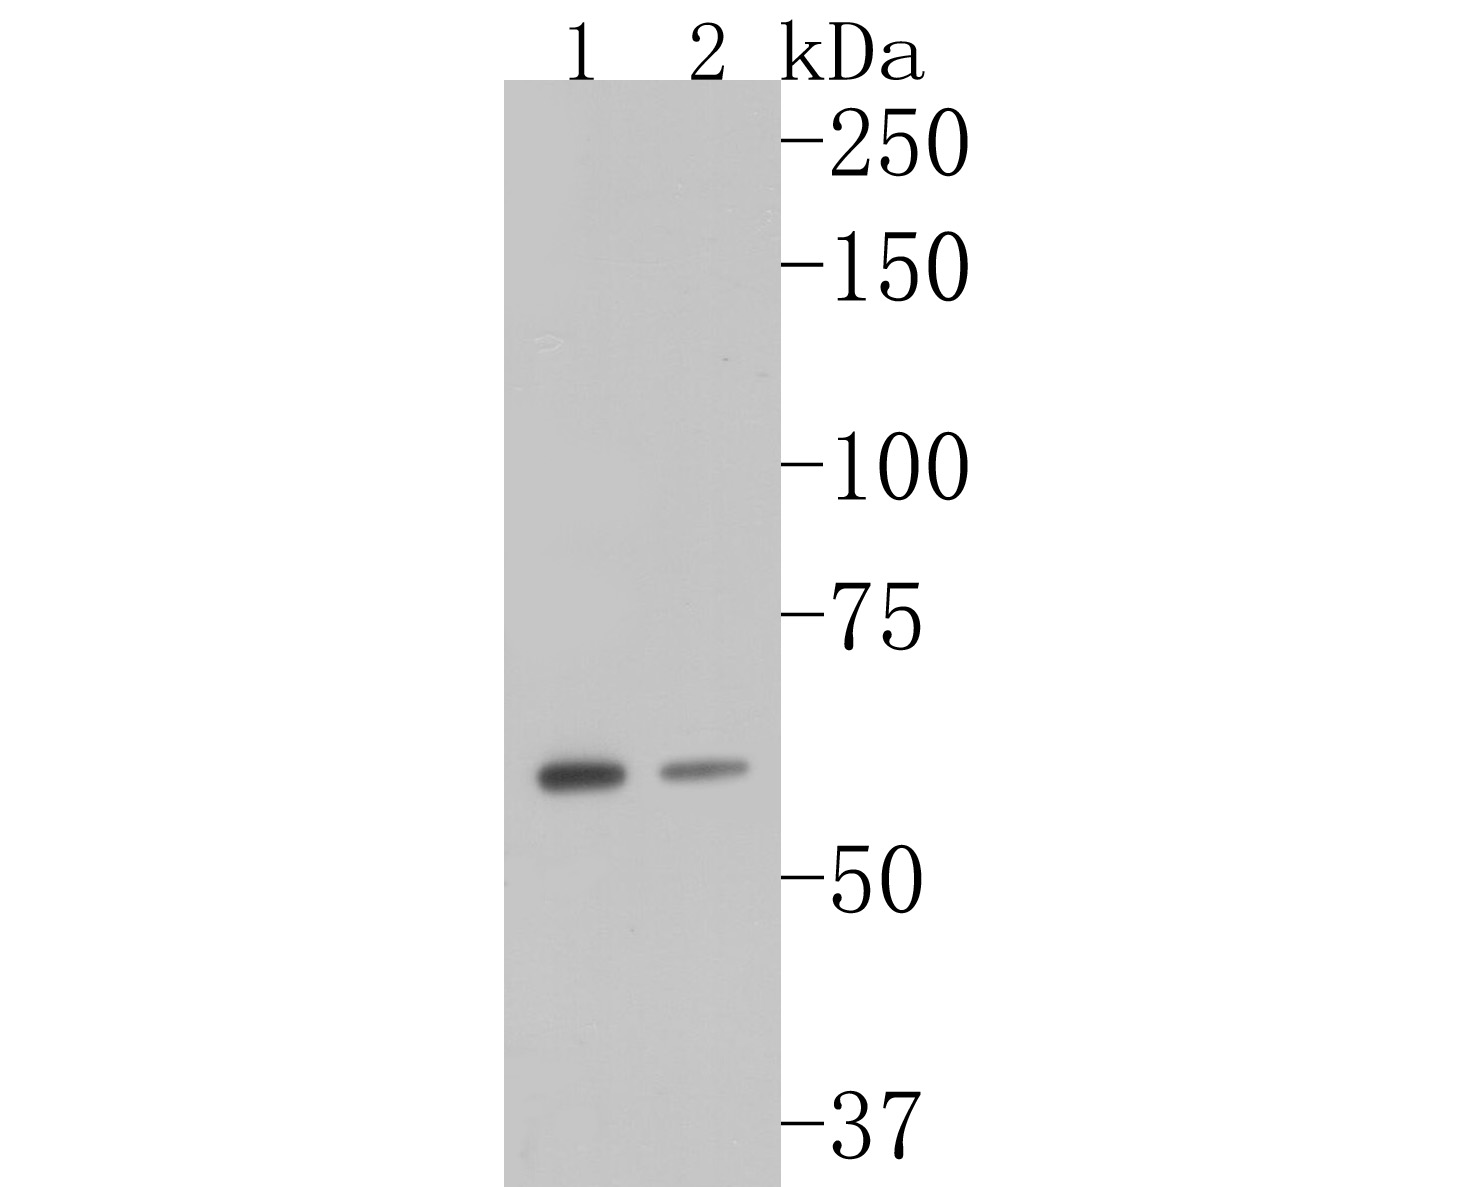 Western blot analysis of GADD34 on different lysates. Proteins were transferred to a PVDF membrane and blocked with 5% BSA in PBS for 1 hour at room temperature. The primary antibody (EM1902-26, 1/500) was used in 5% BSA at room temperature for 2 hours. Goat Anti-Mouse IgG - HRP Secondary Antibody (HA1006) at 1:5,000 dilution was used for 1 hour at room temperature.<br />  Positive control: <br />  Lane 1: HepG2 cell lysate<br />  Lane 2: K562 cell lysate